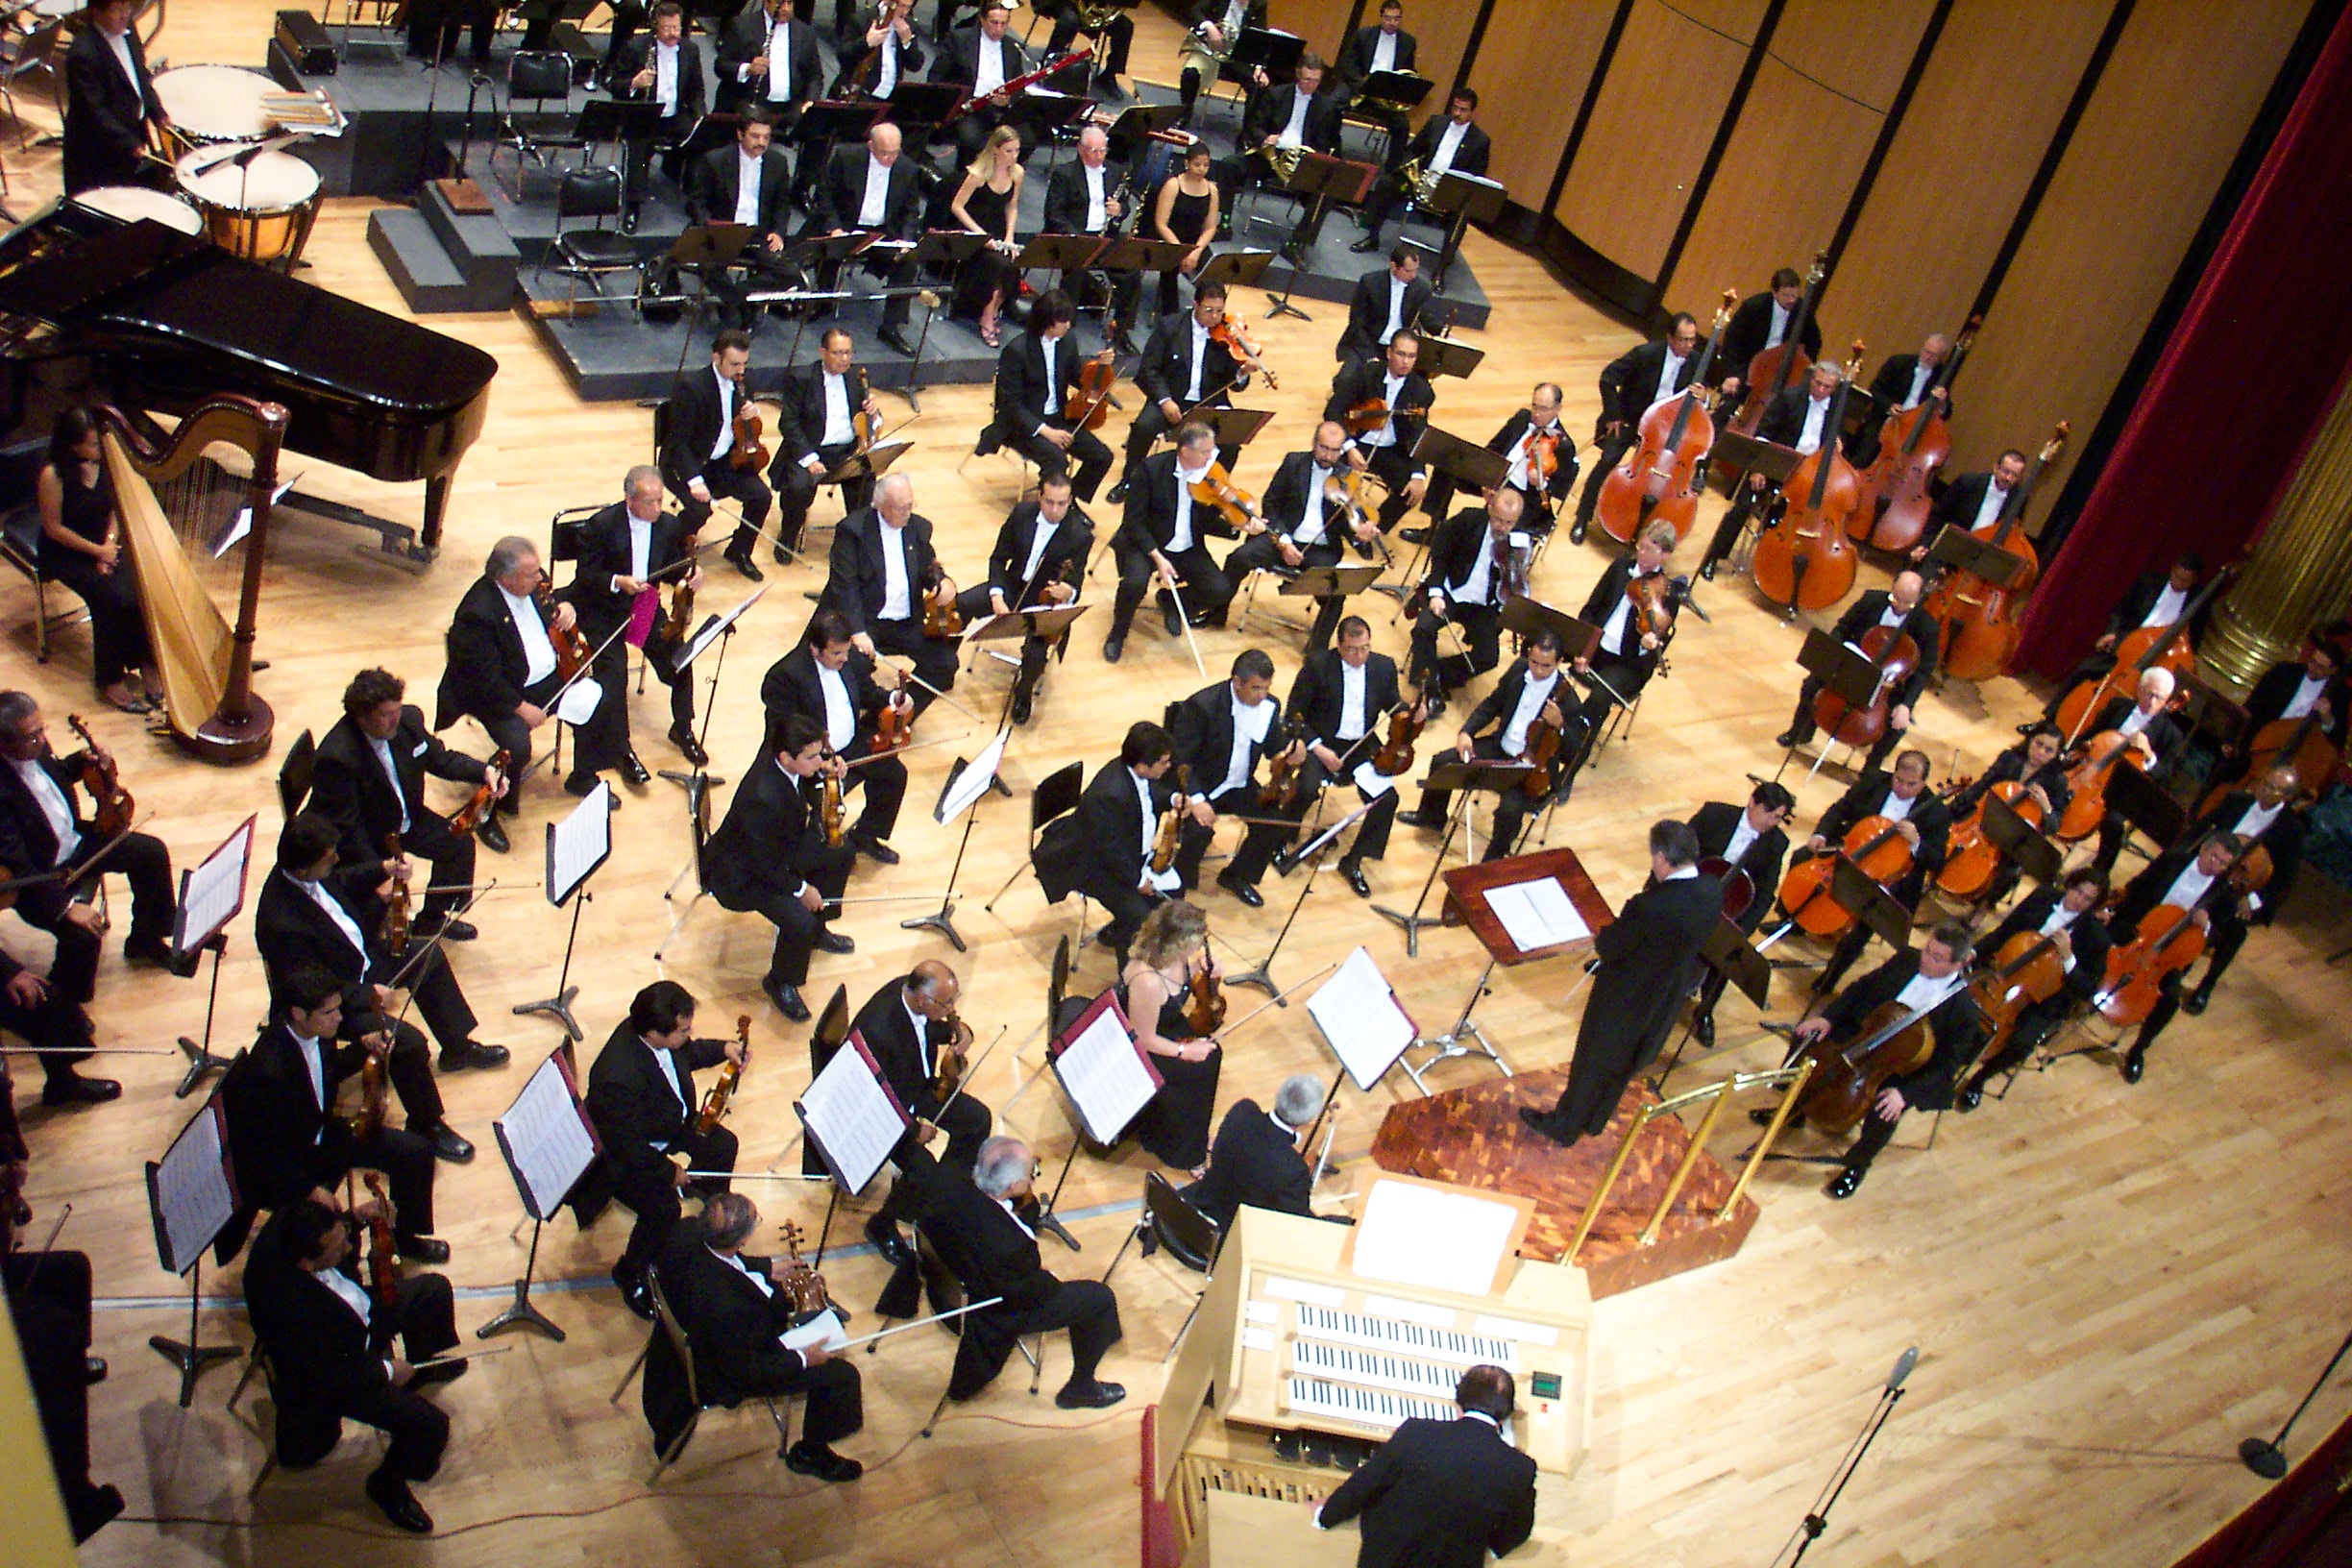 8 Reasons You Should Listen More To Classical Music